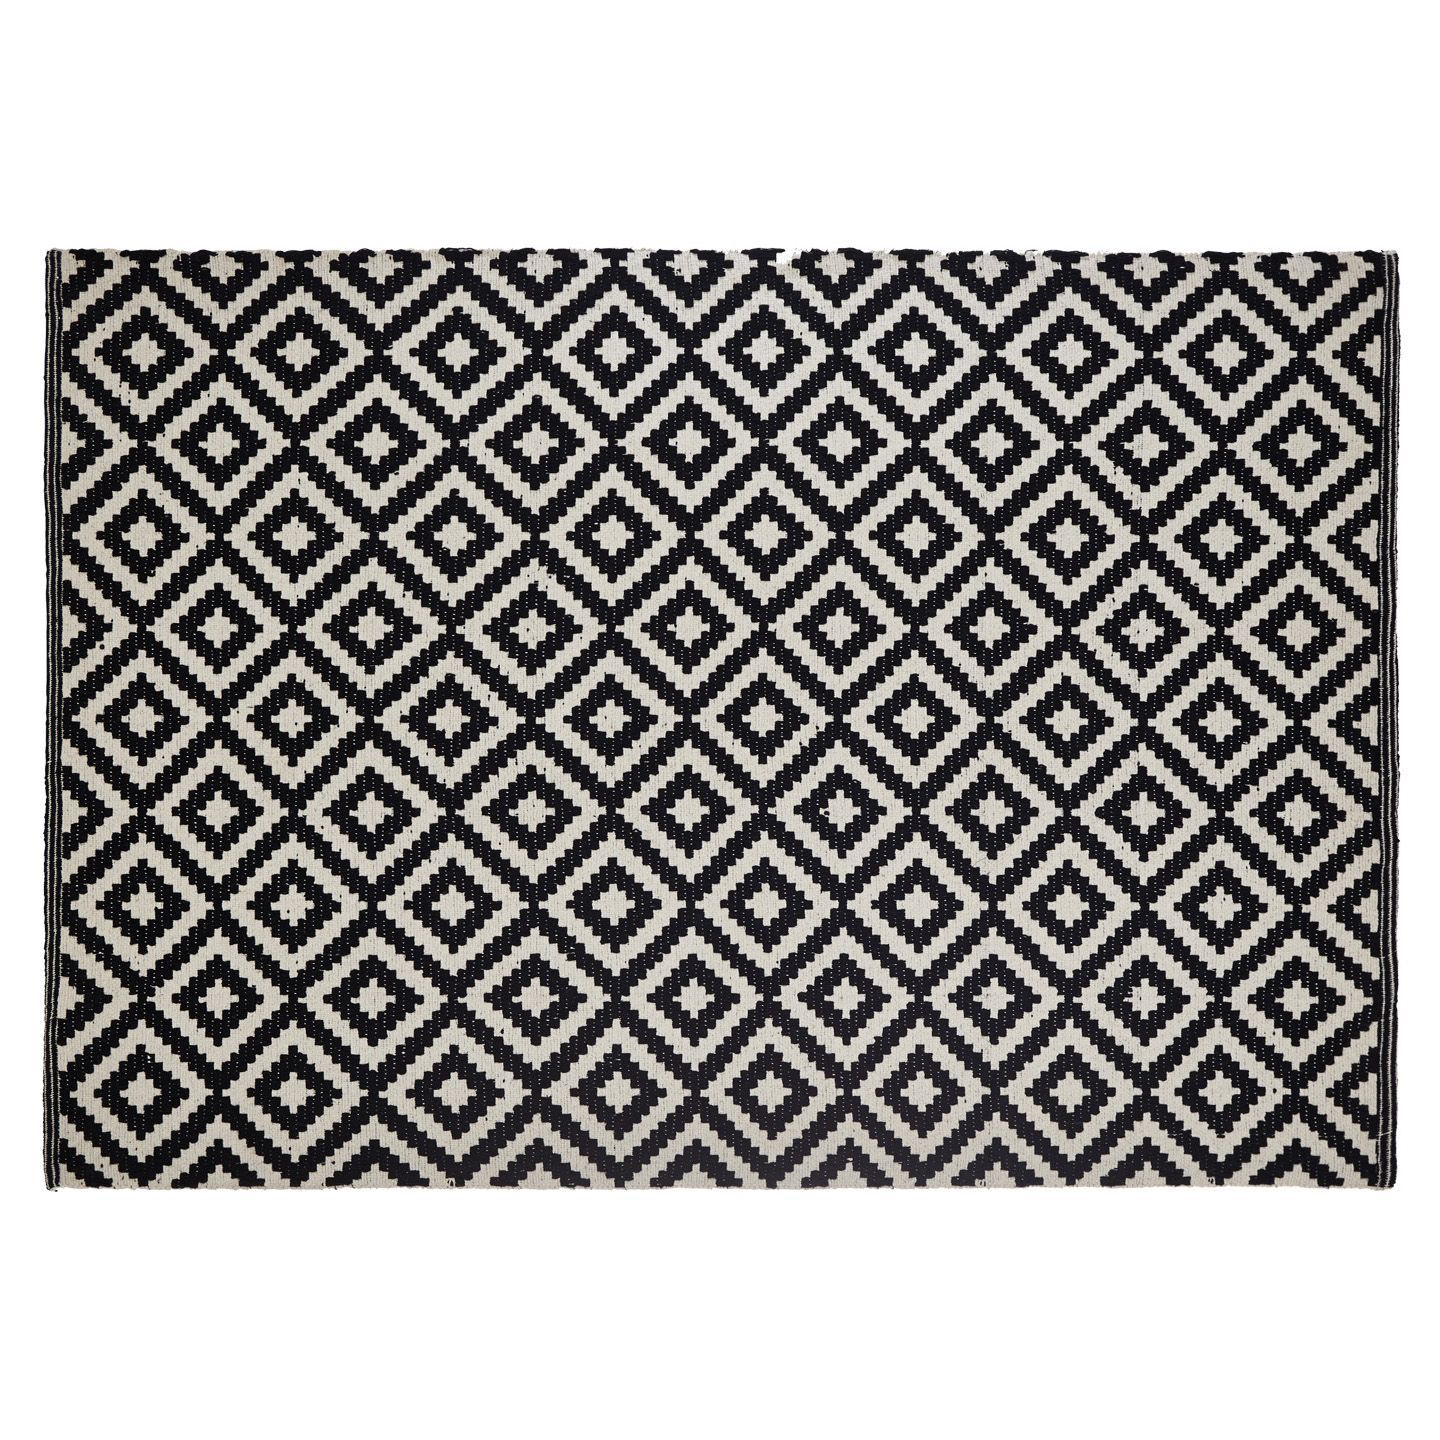 Colours Harrietta Black White Geometric Rug L 1 7m W 2 M Departments Diy At B Q